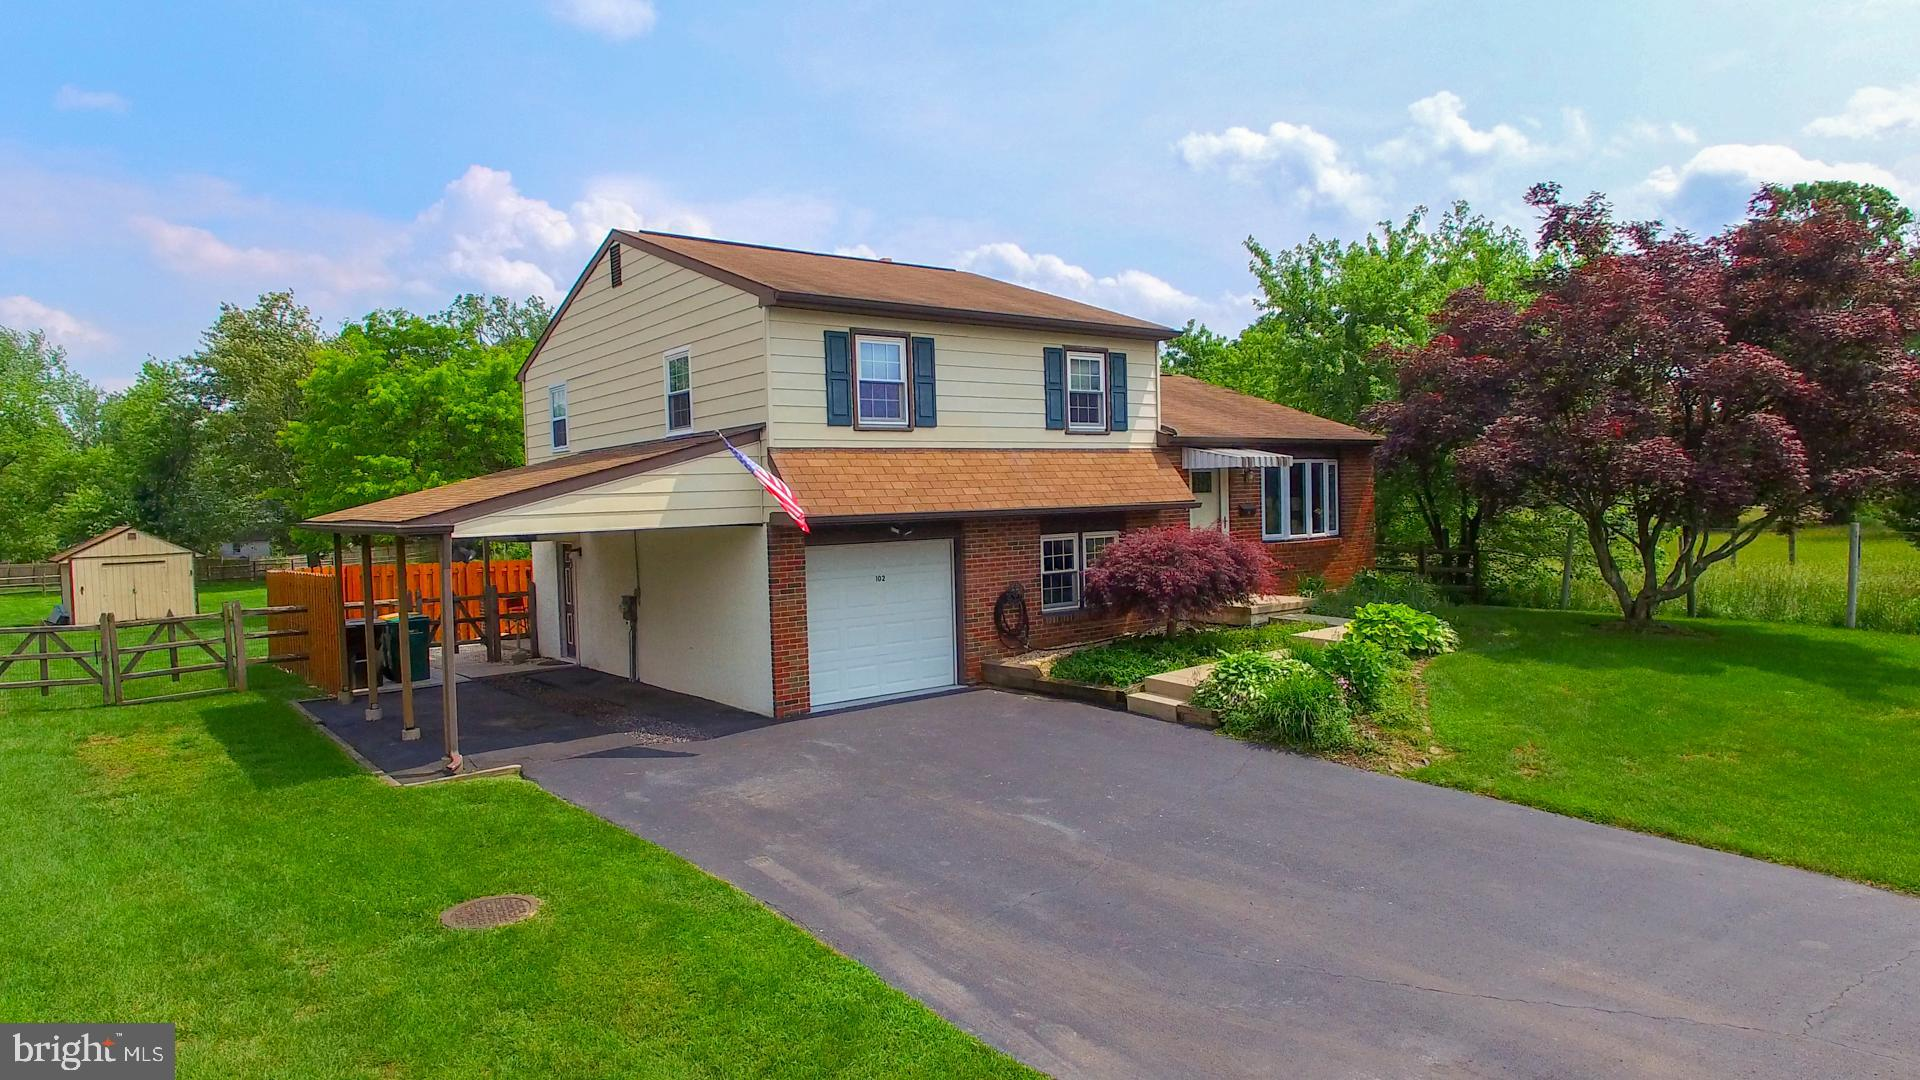 102 MEADOWLAND DRIVE, RED HILL, PA 18076